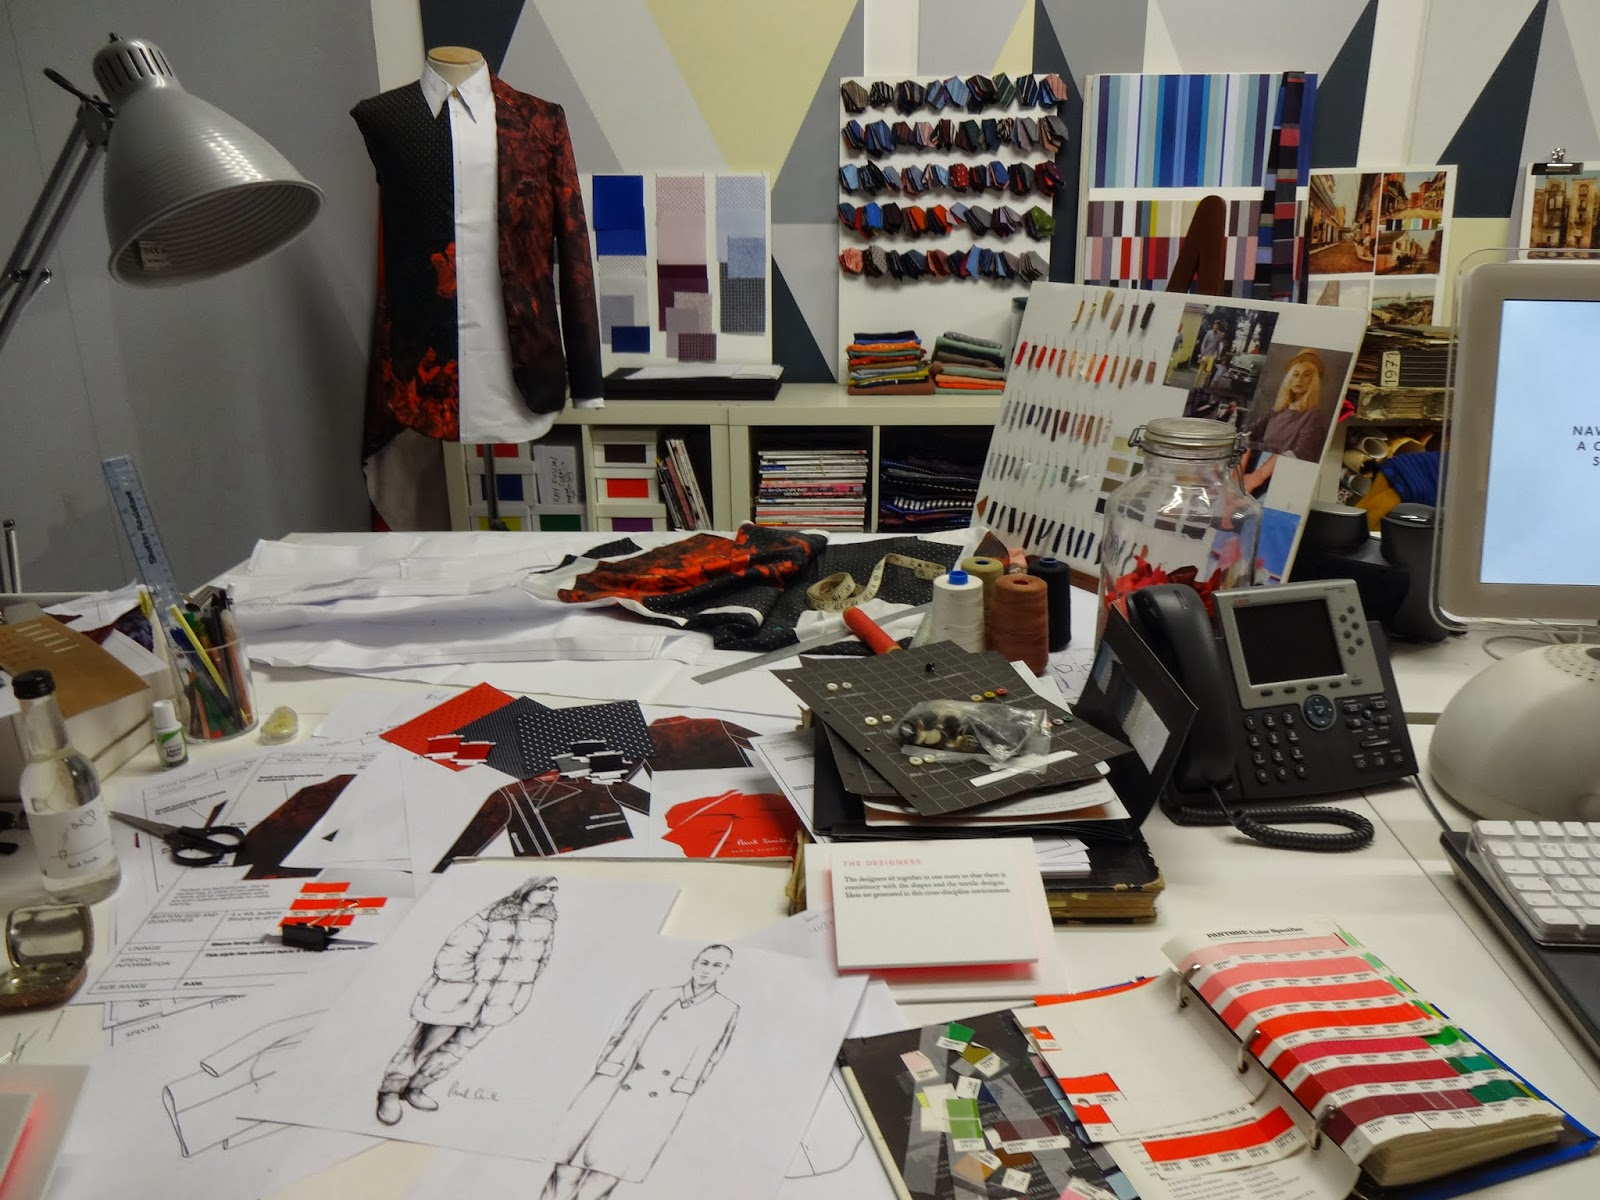 Paul Smith's Studio - The Designer